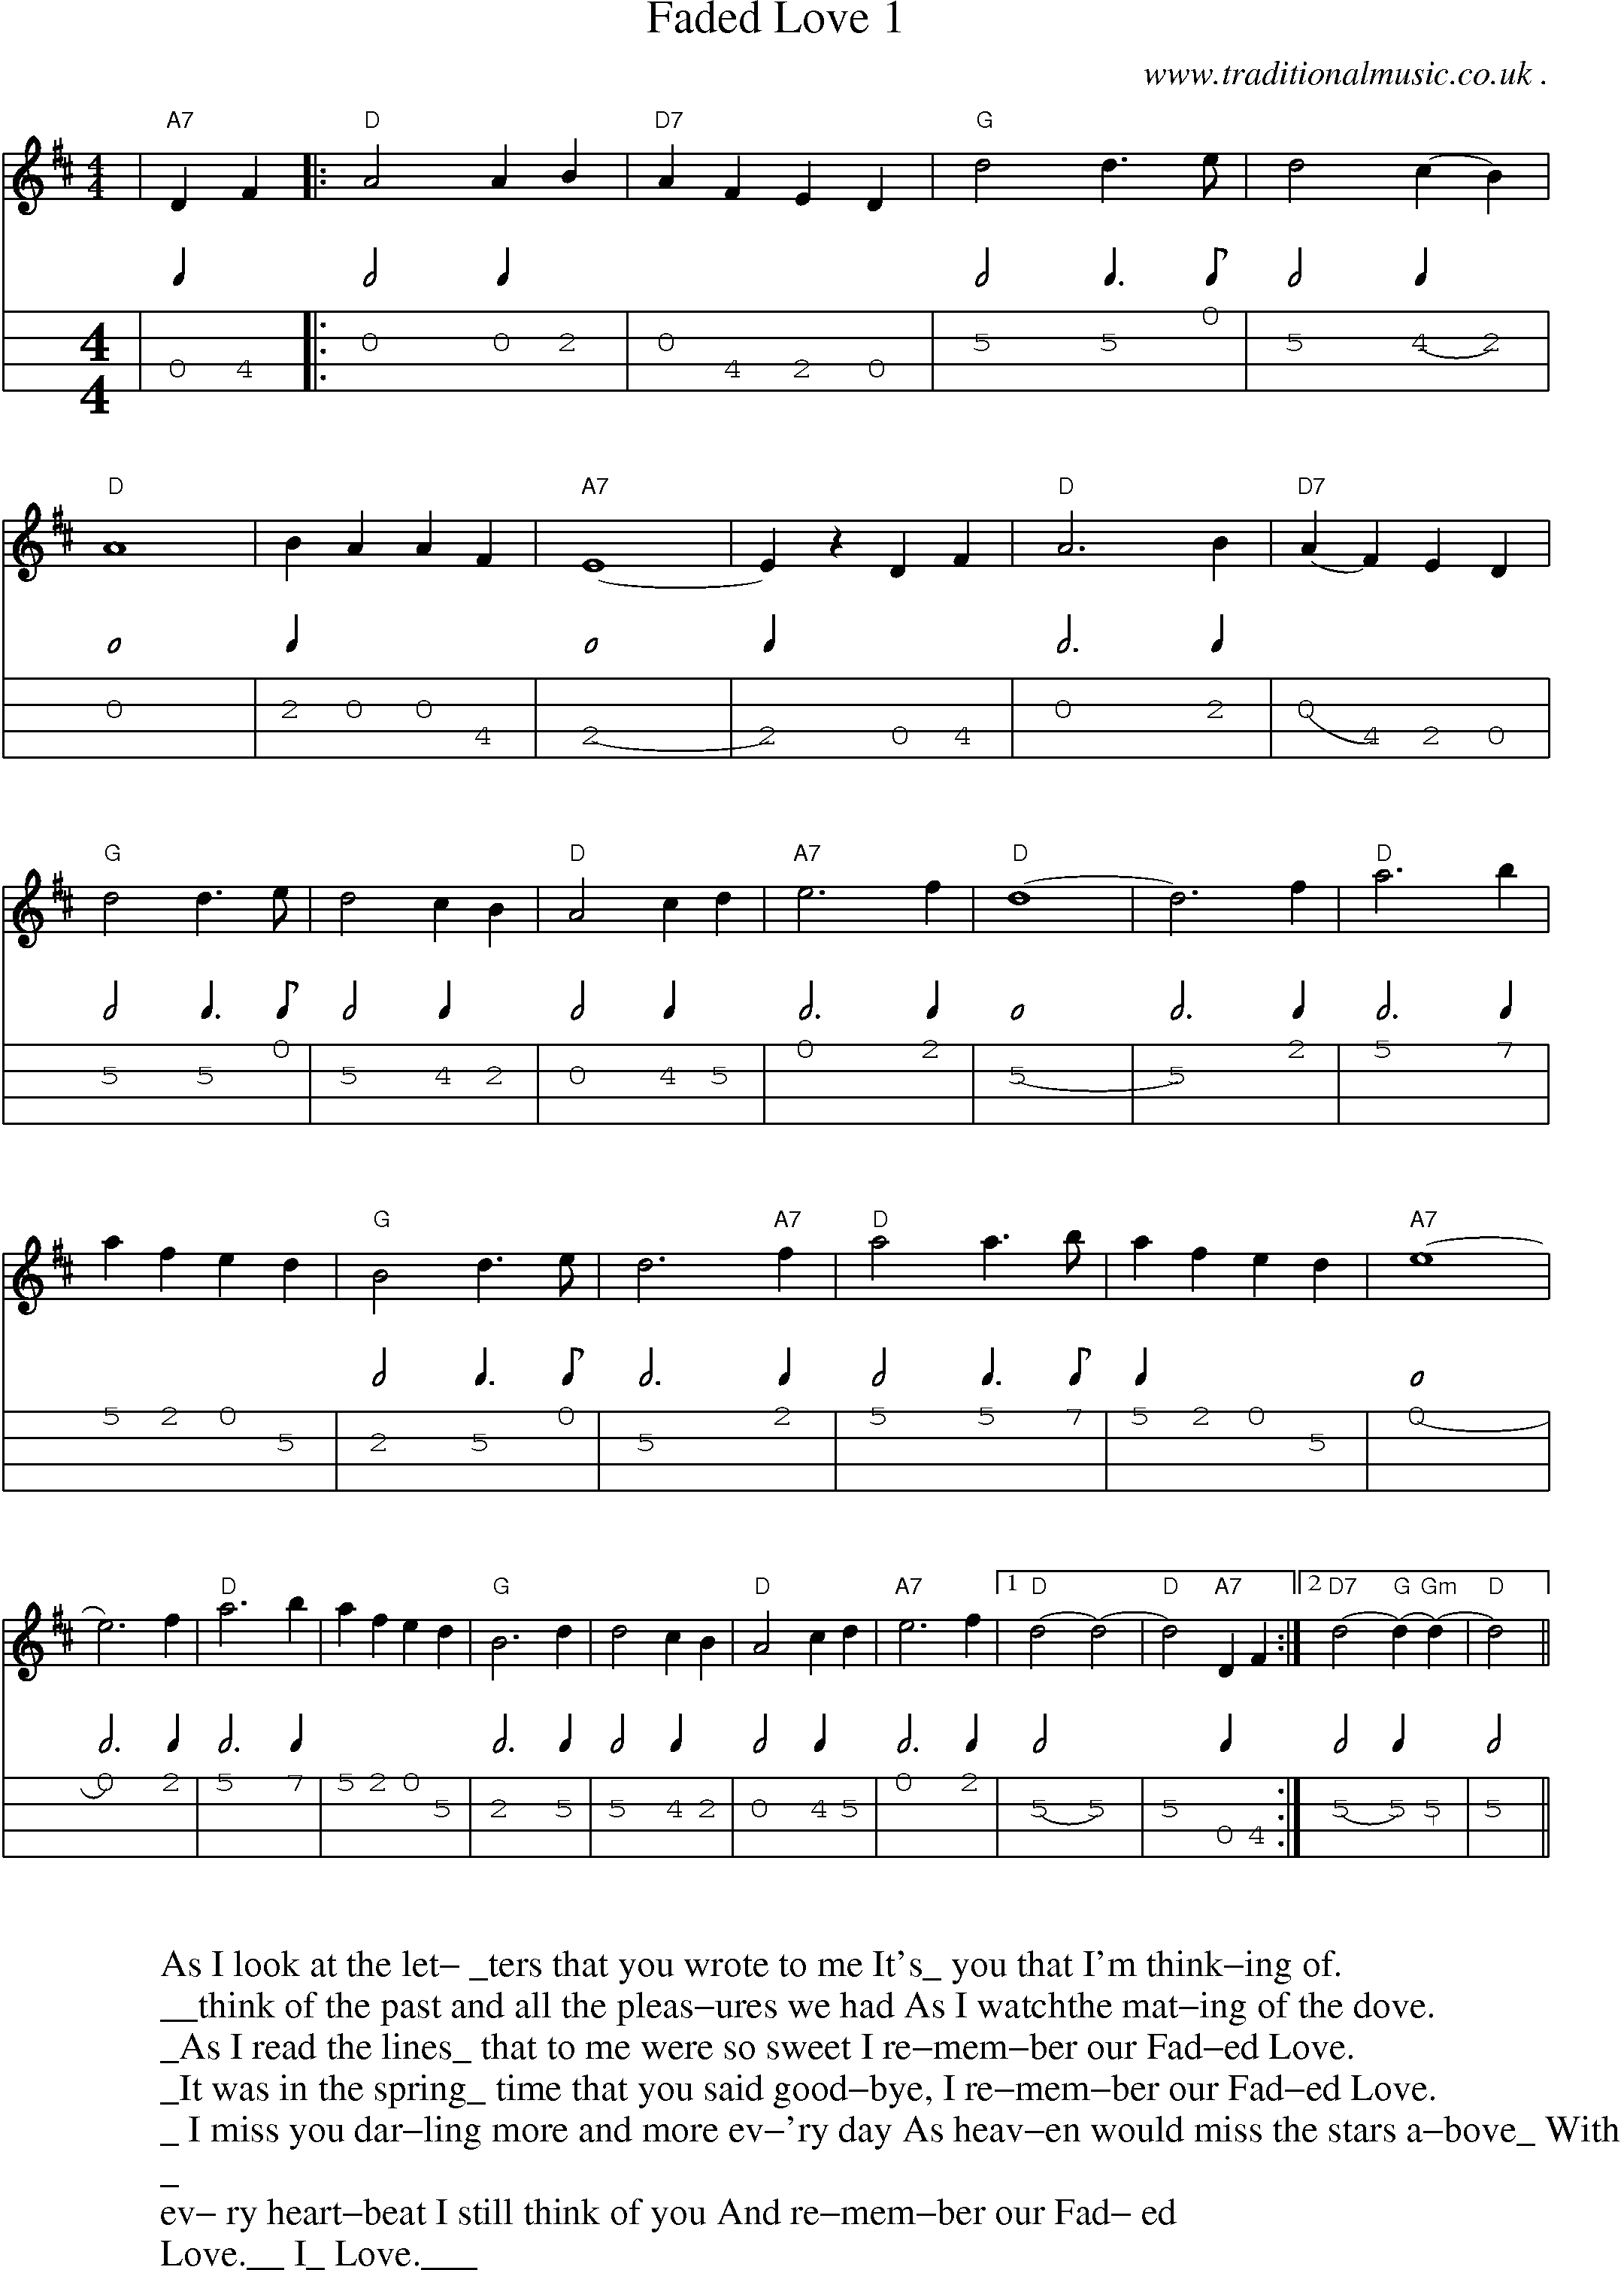 Music Score And Mandolin Tabs For Faded Love 1 Music In 2019